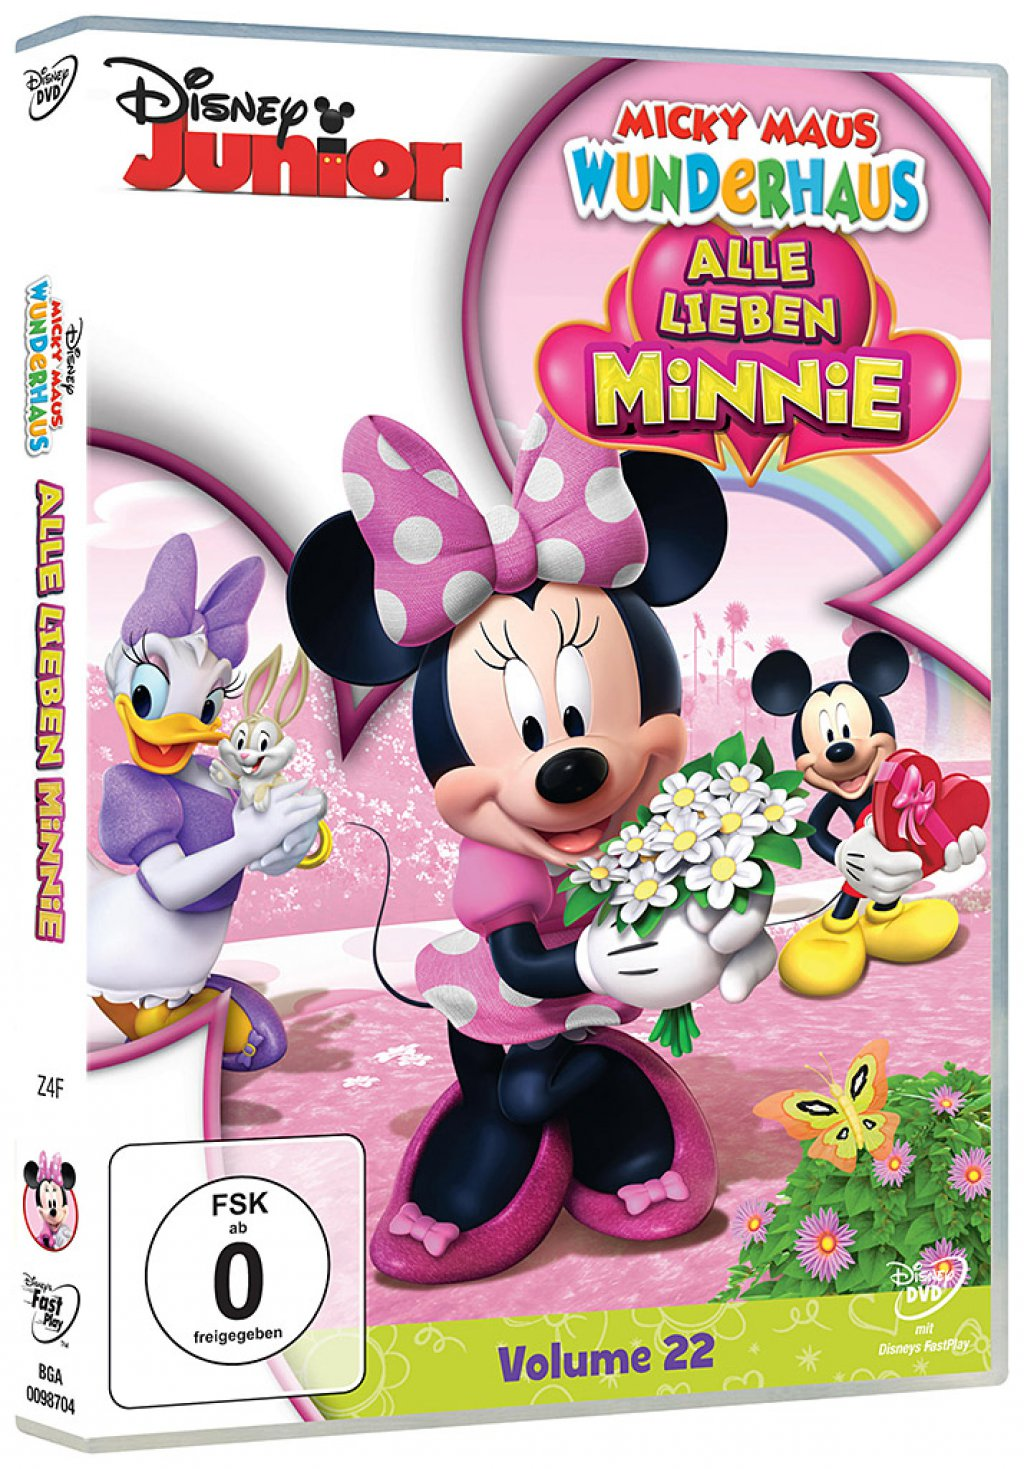 dvd preisvergleich micky maus wunderhaus alle lieben minnie. Black Bedroom Furniture Sets. Home Design Ideas